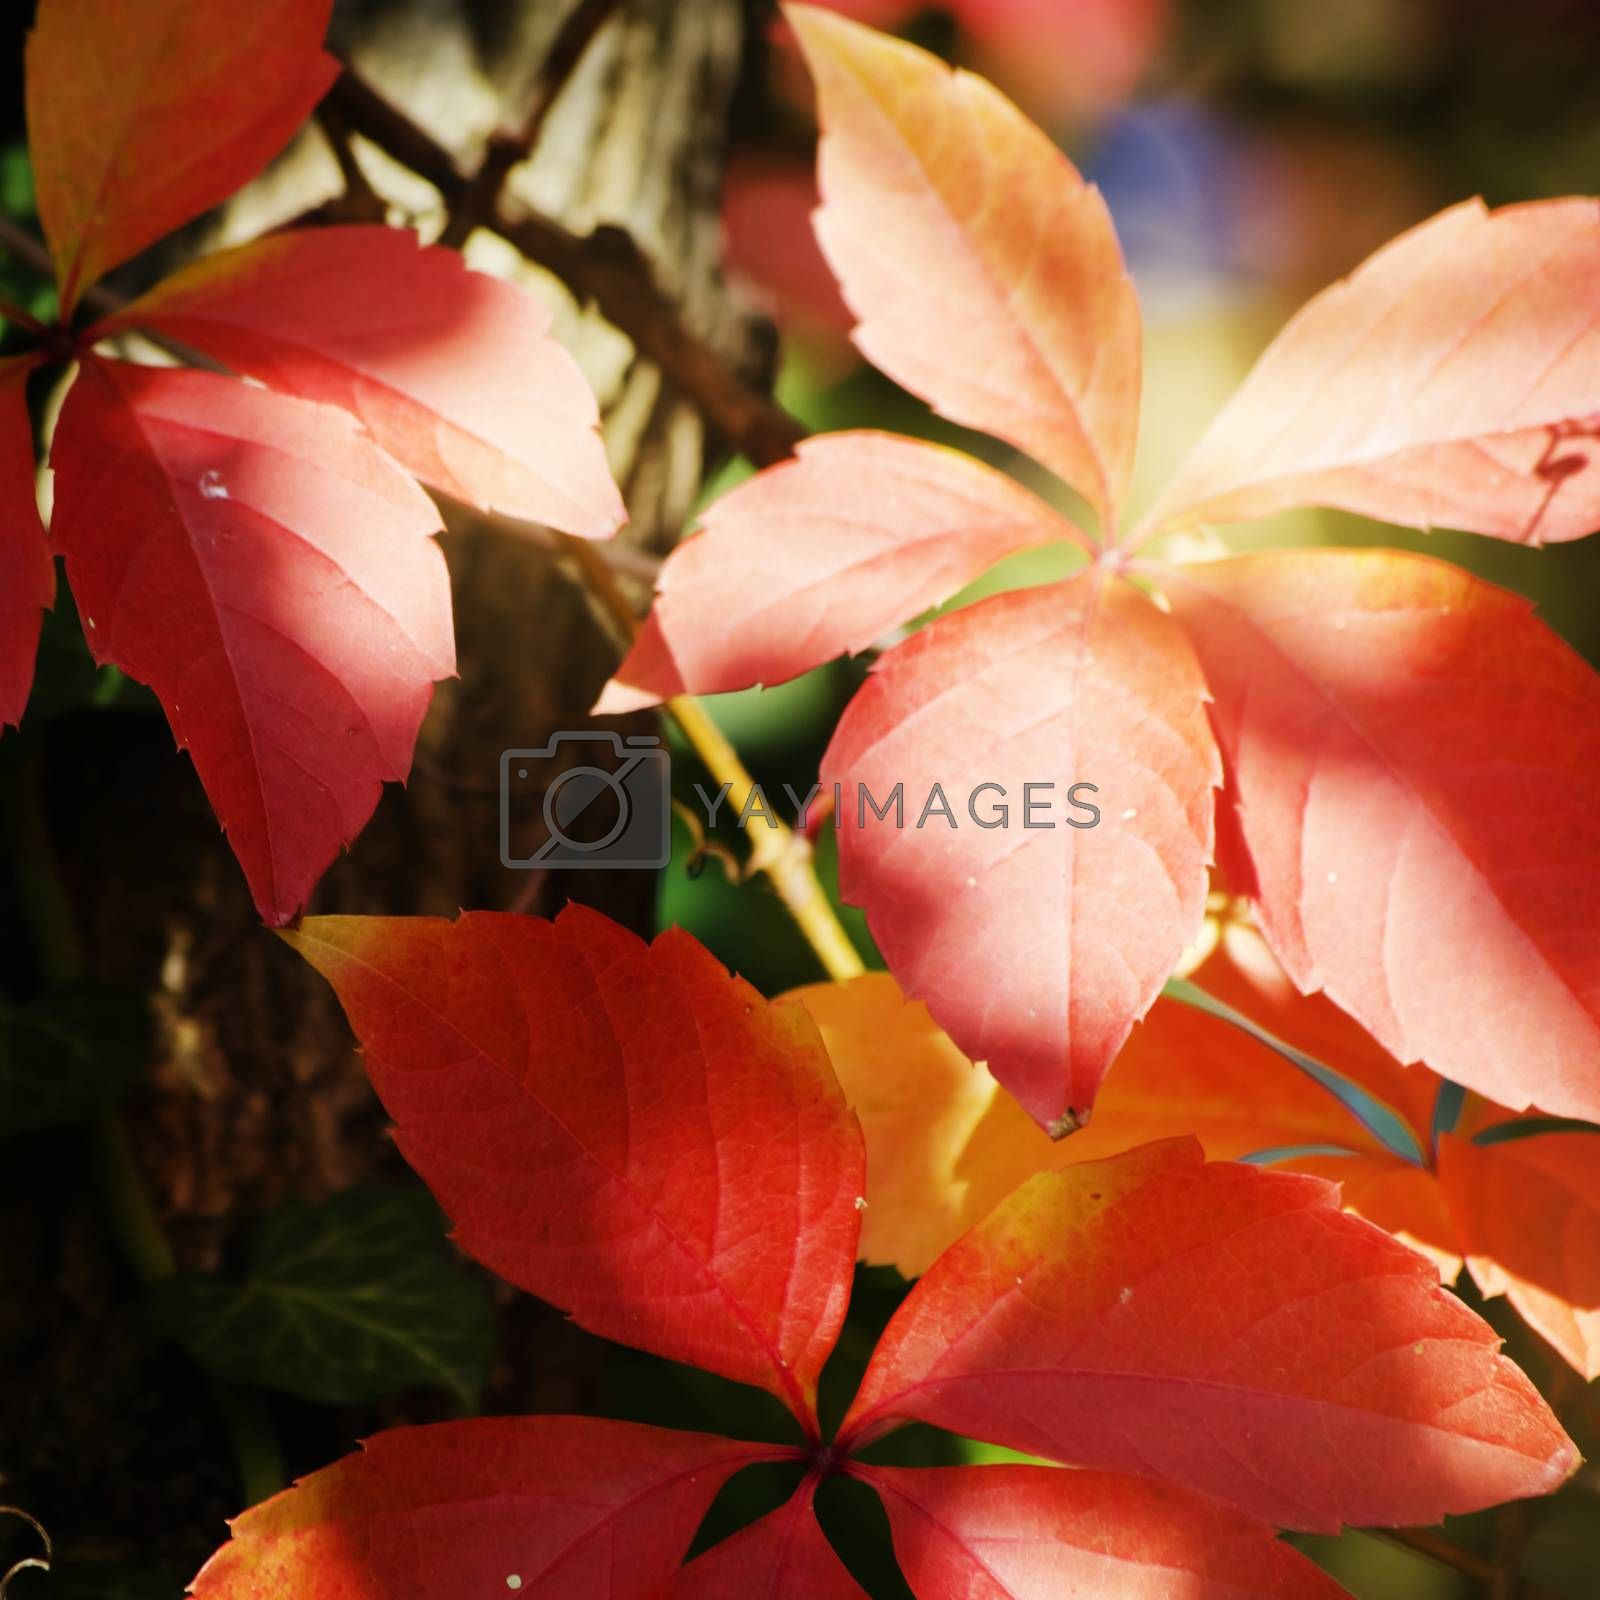 Bright Autumn Tree Leaves in Sunny Day